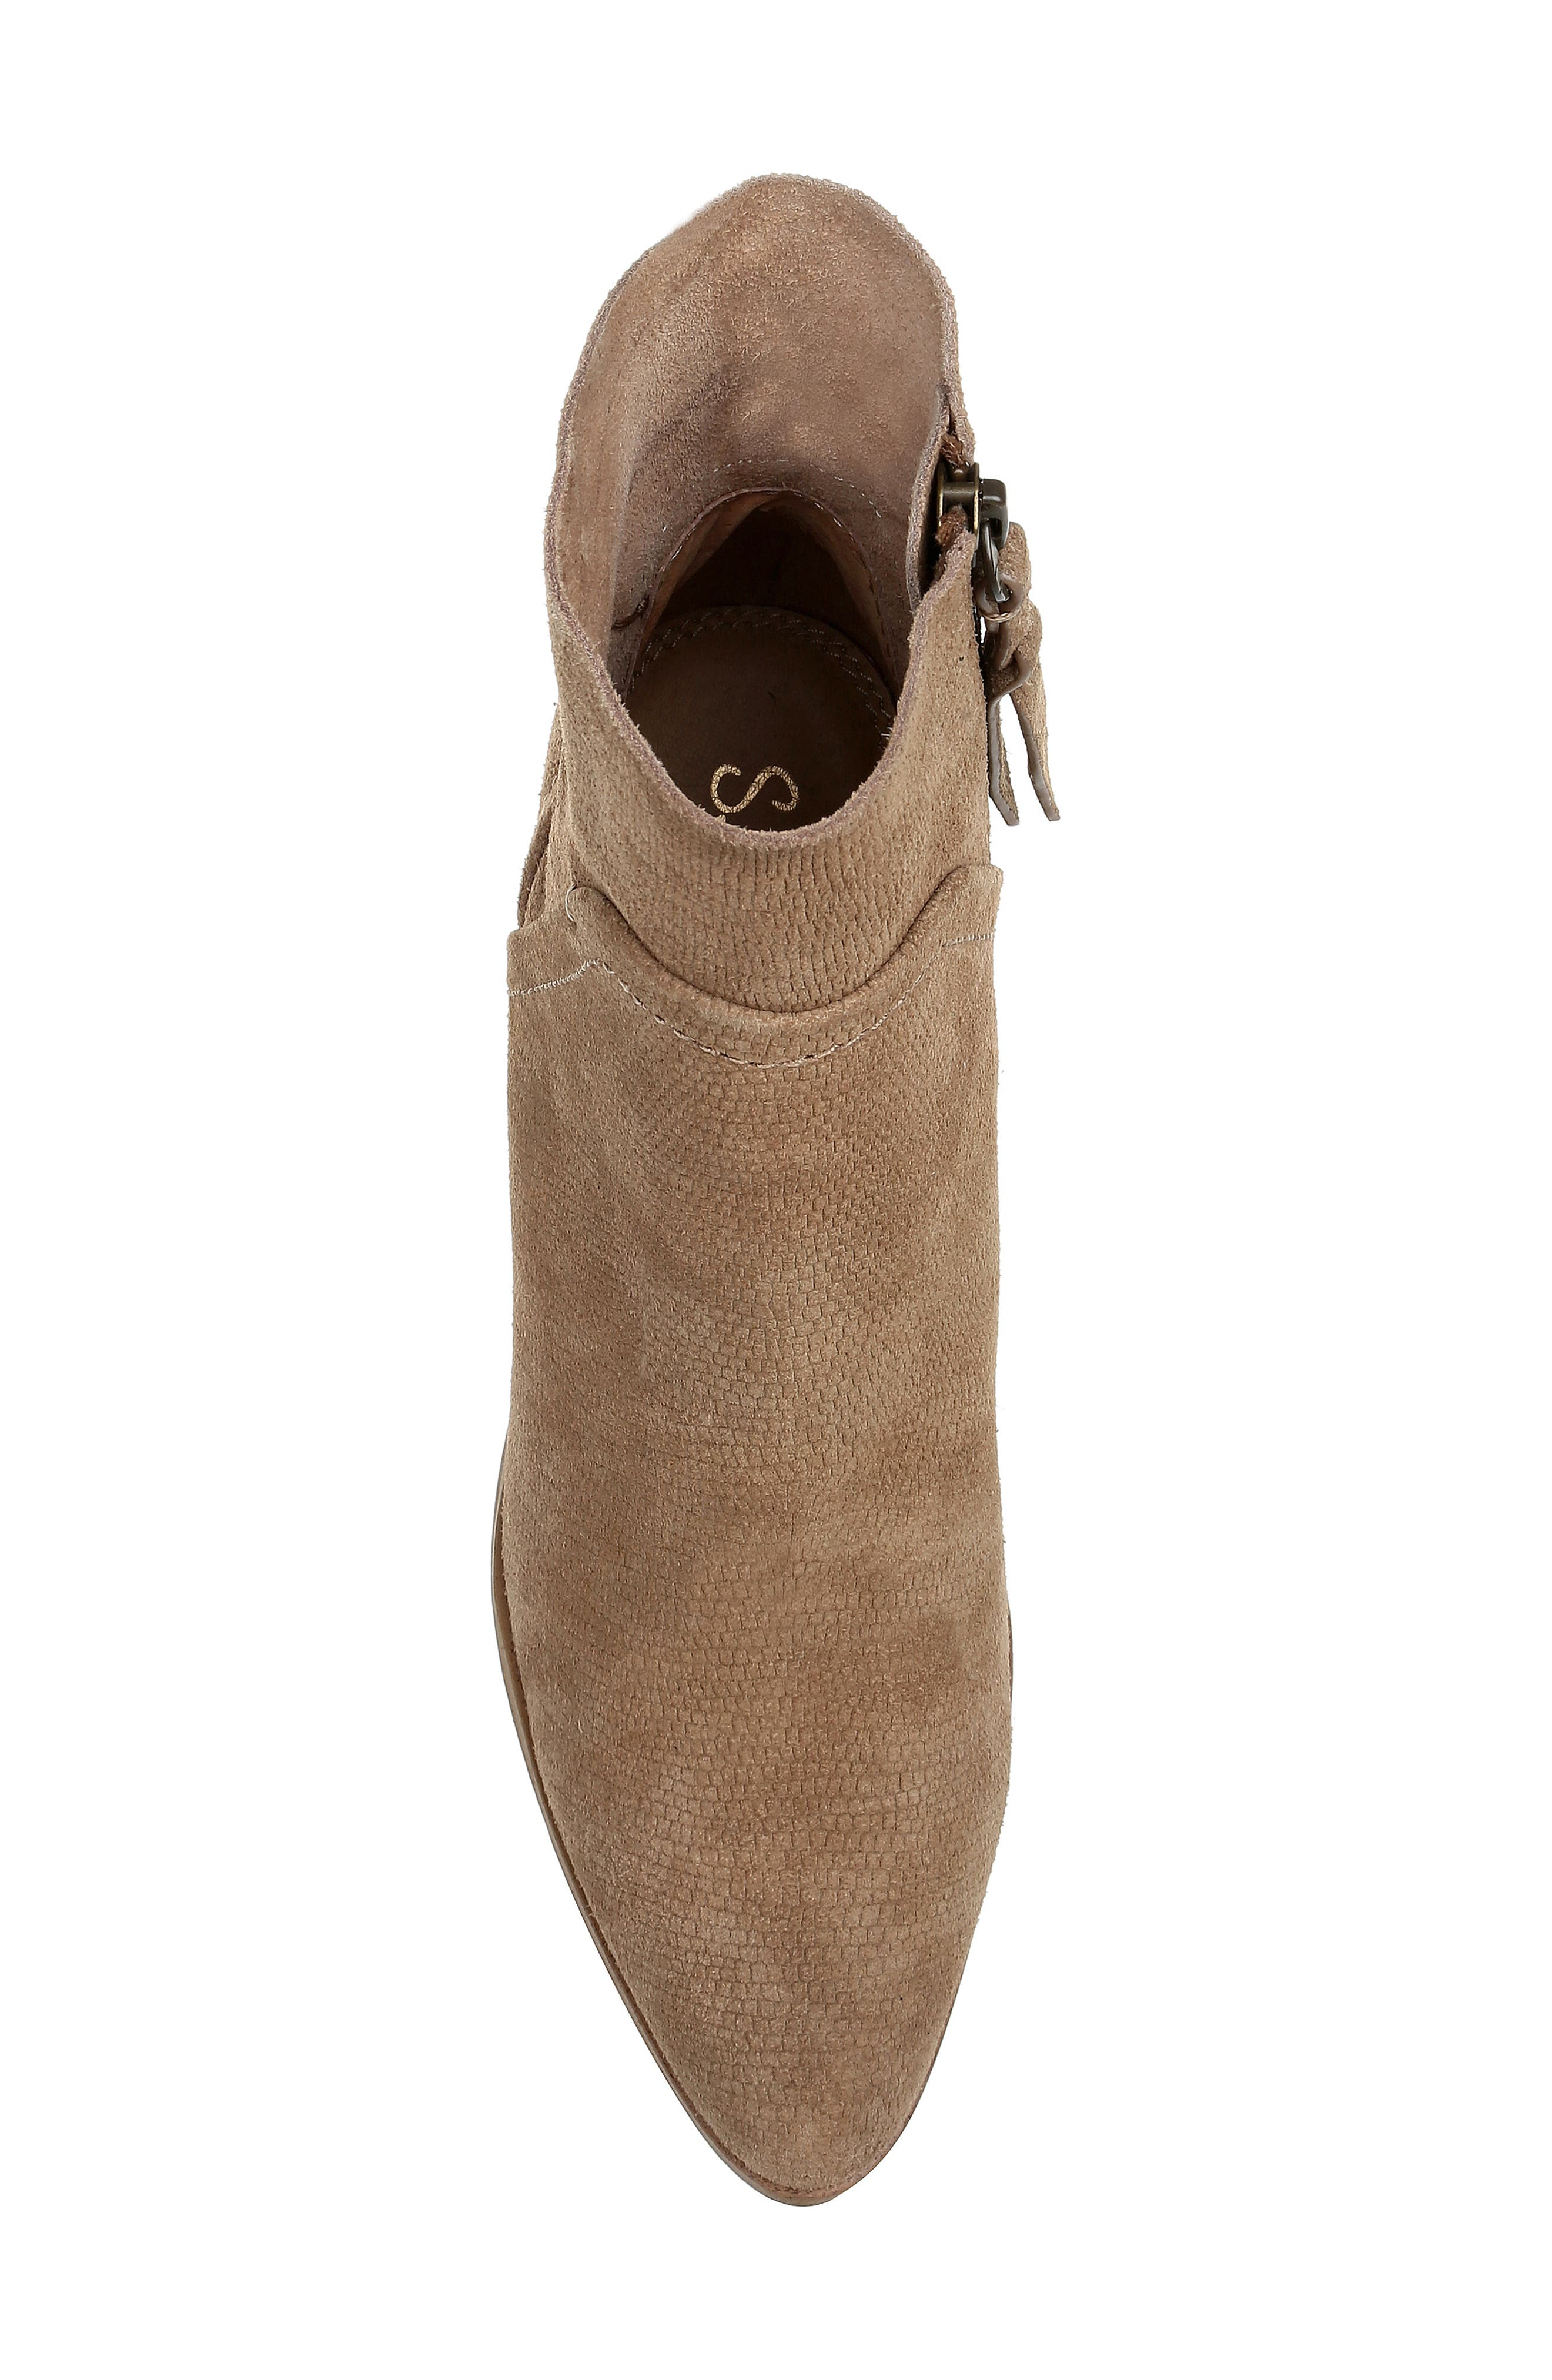 Cherie Bootie,                             Alternate thumbnail 5, color,                             OAT EMBOSSED SUEDE